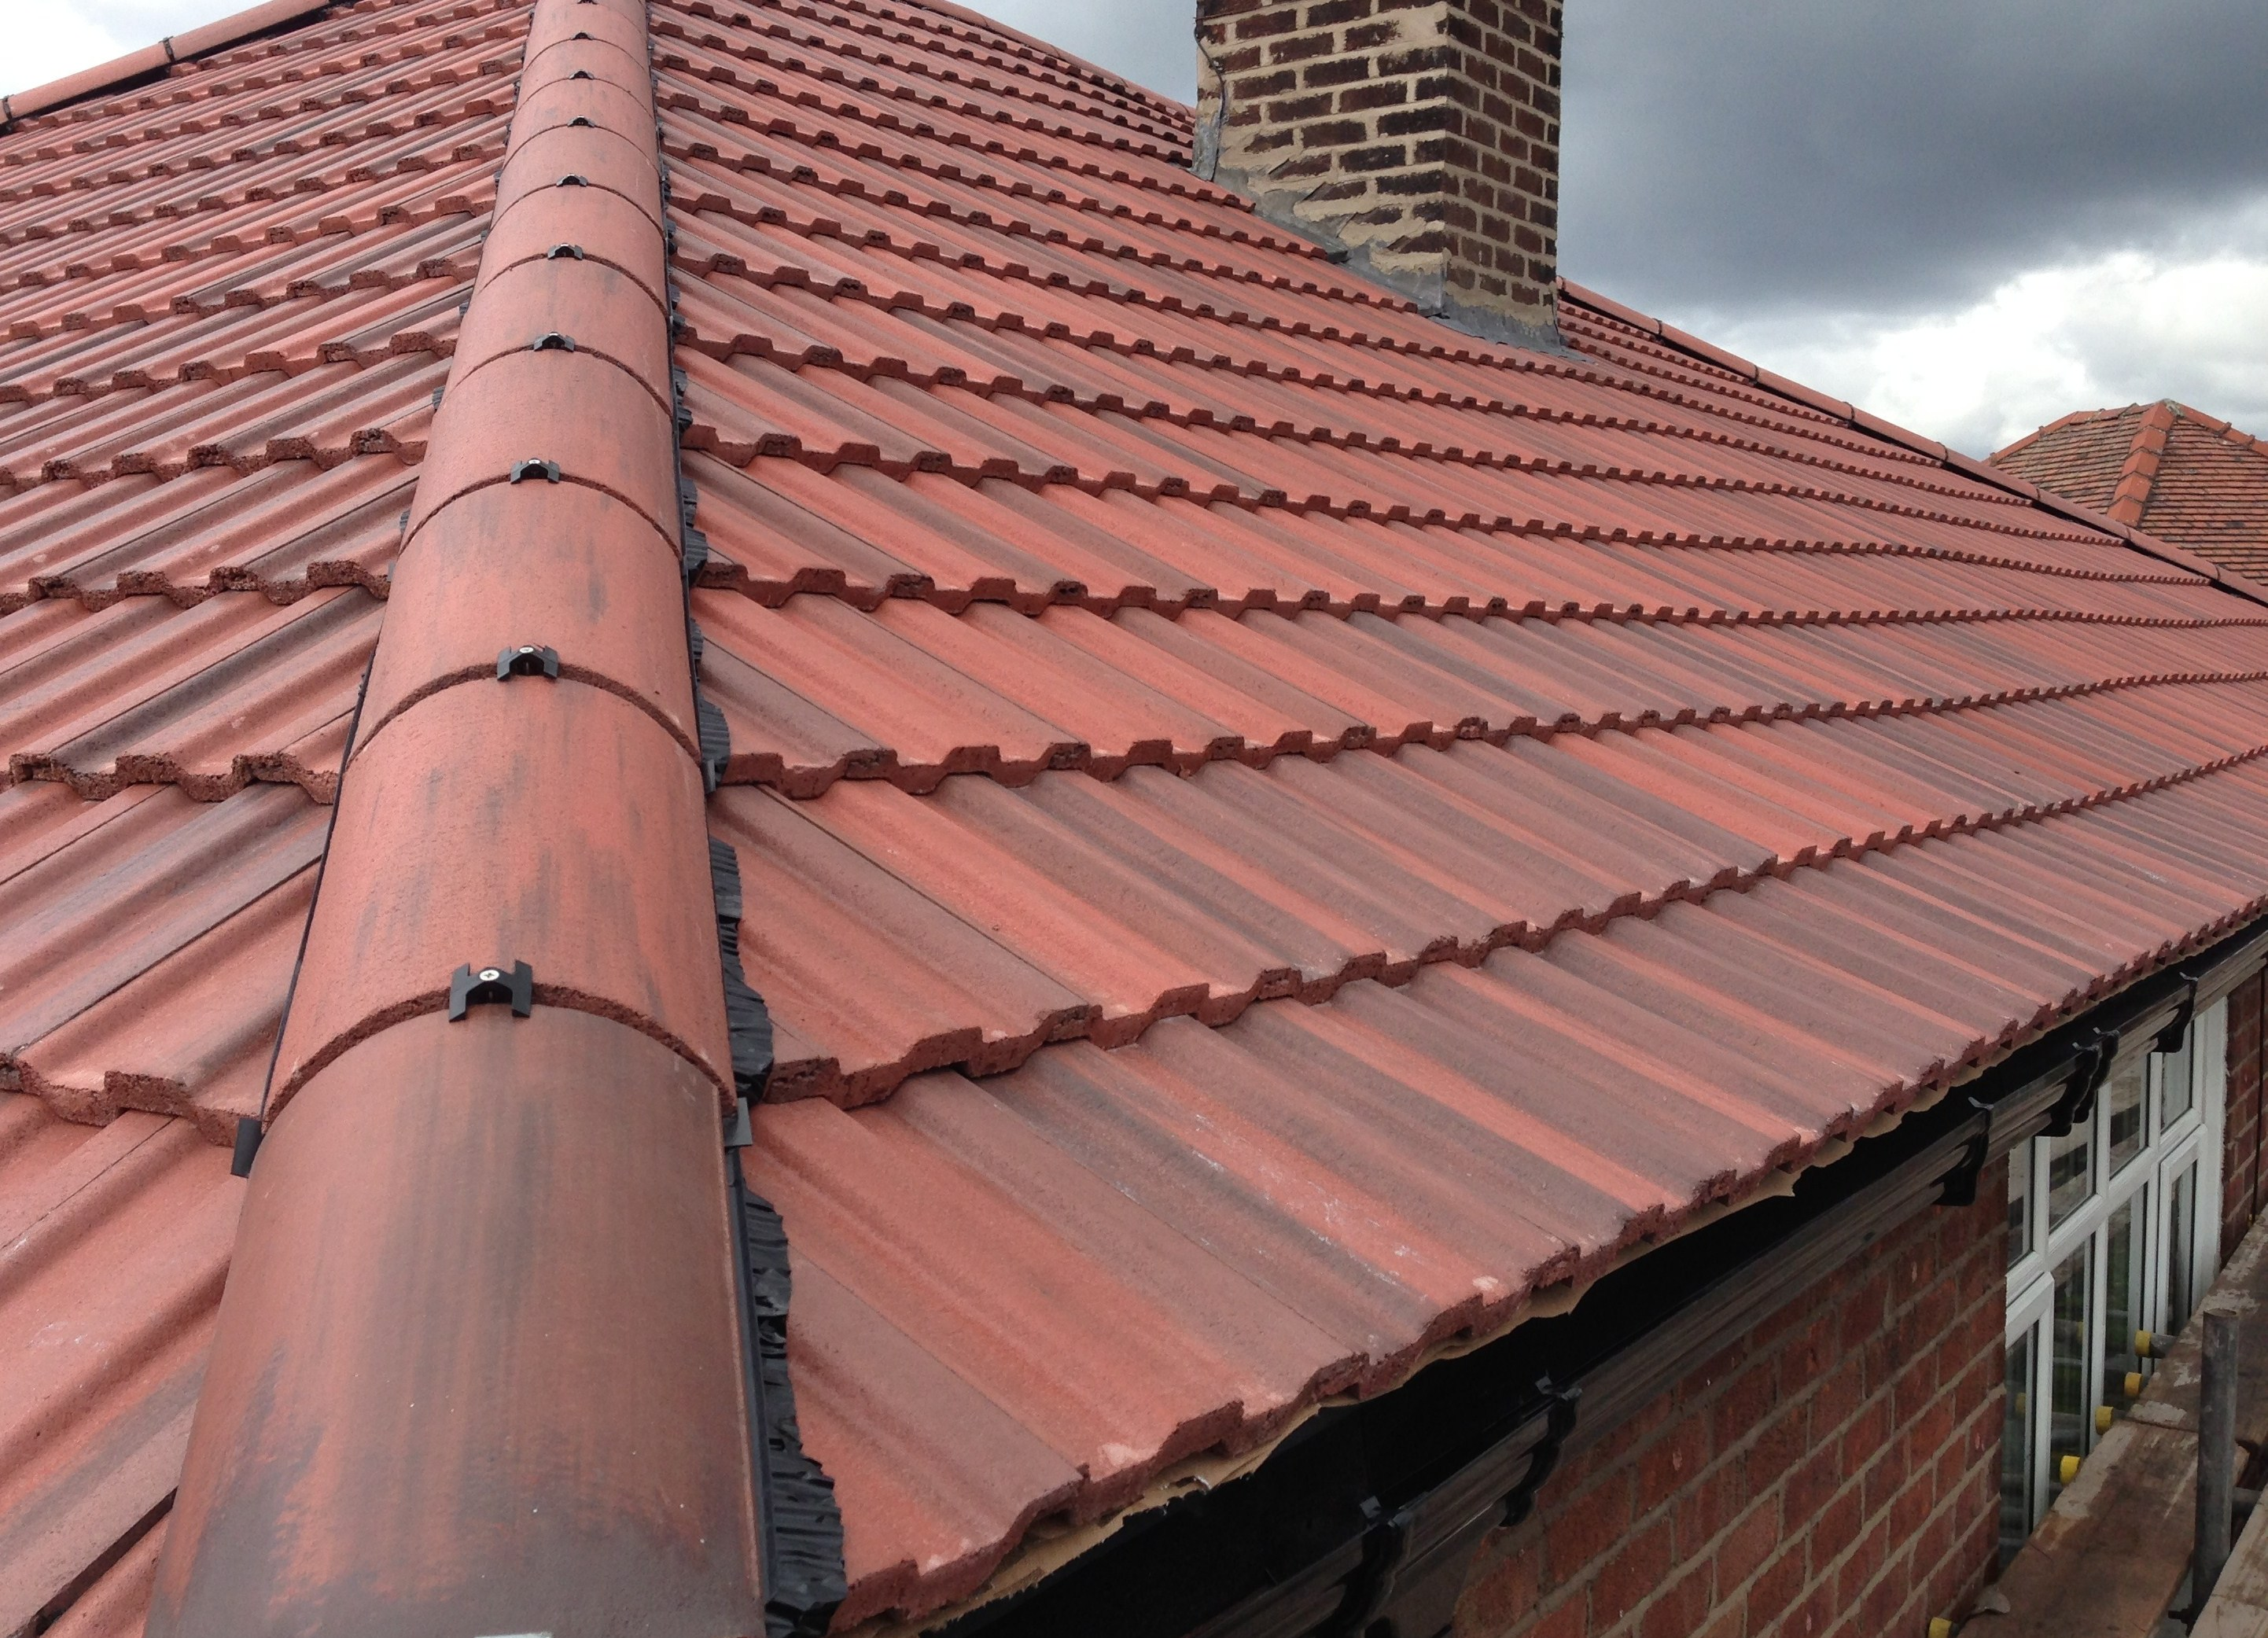 Roof Tiled